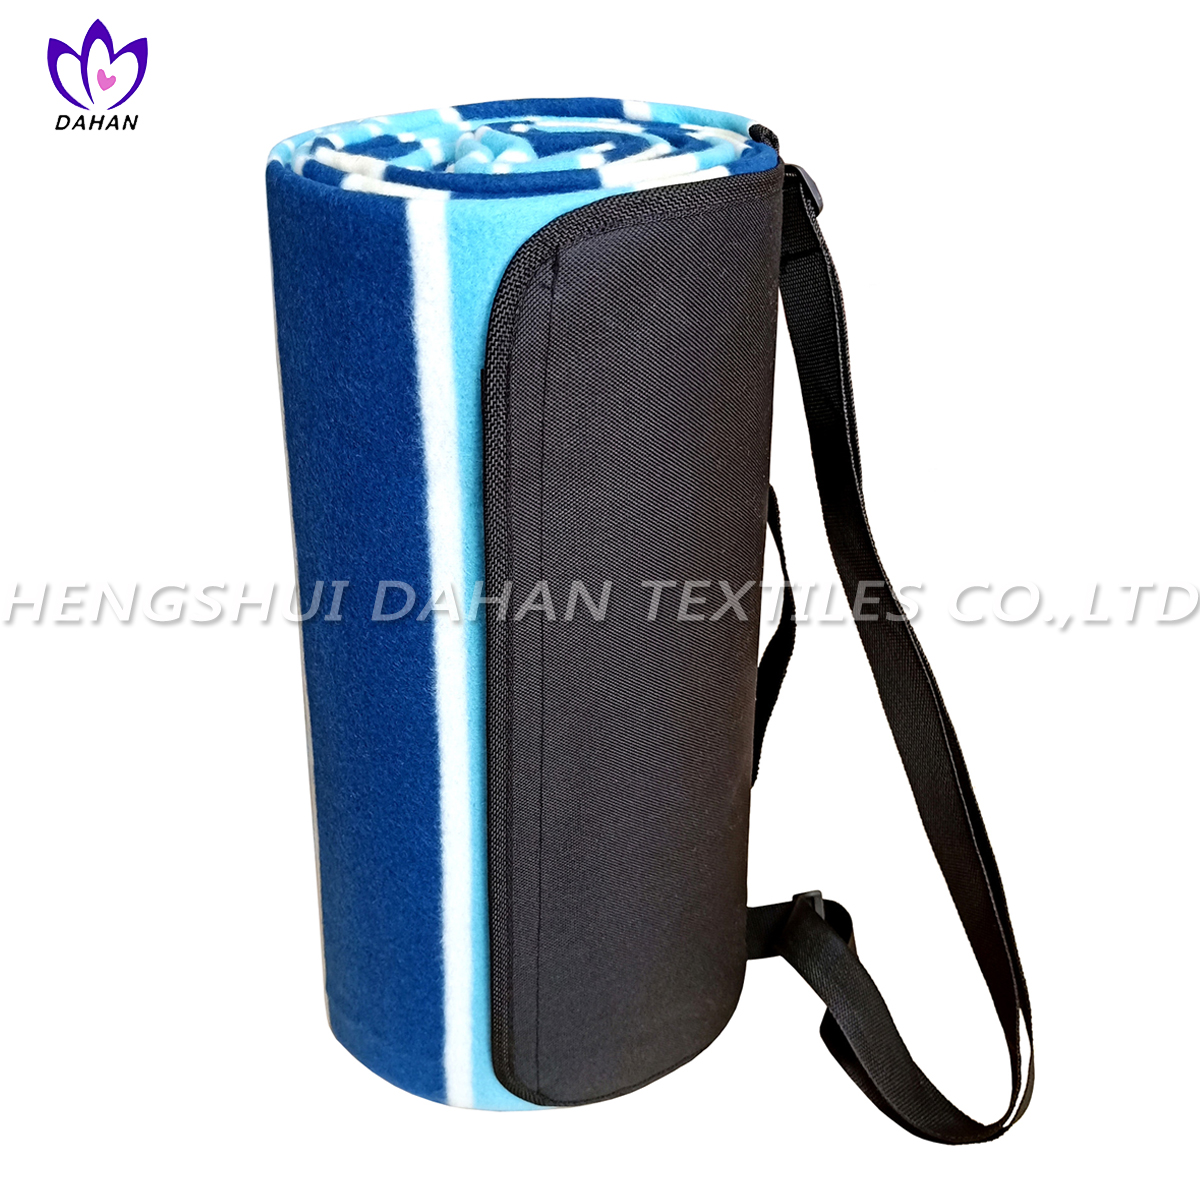 Picnic blanket waterproof picnic mat with printing.PC19-20